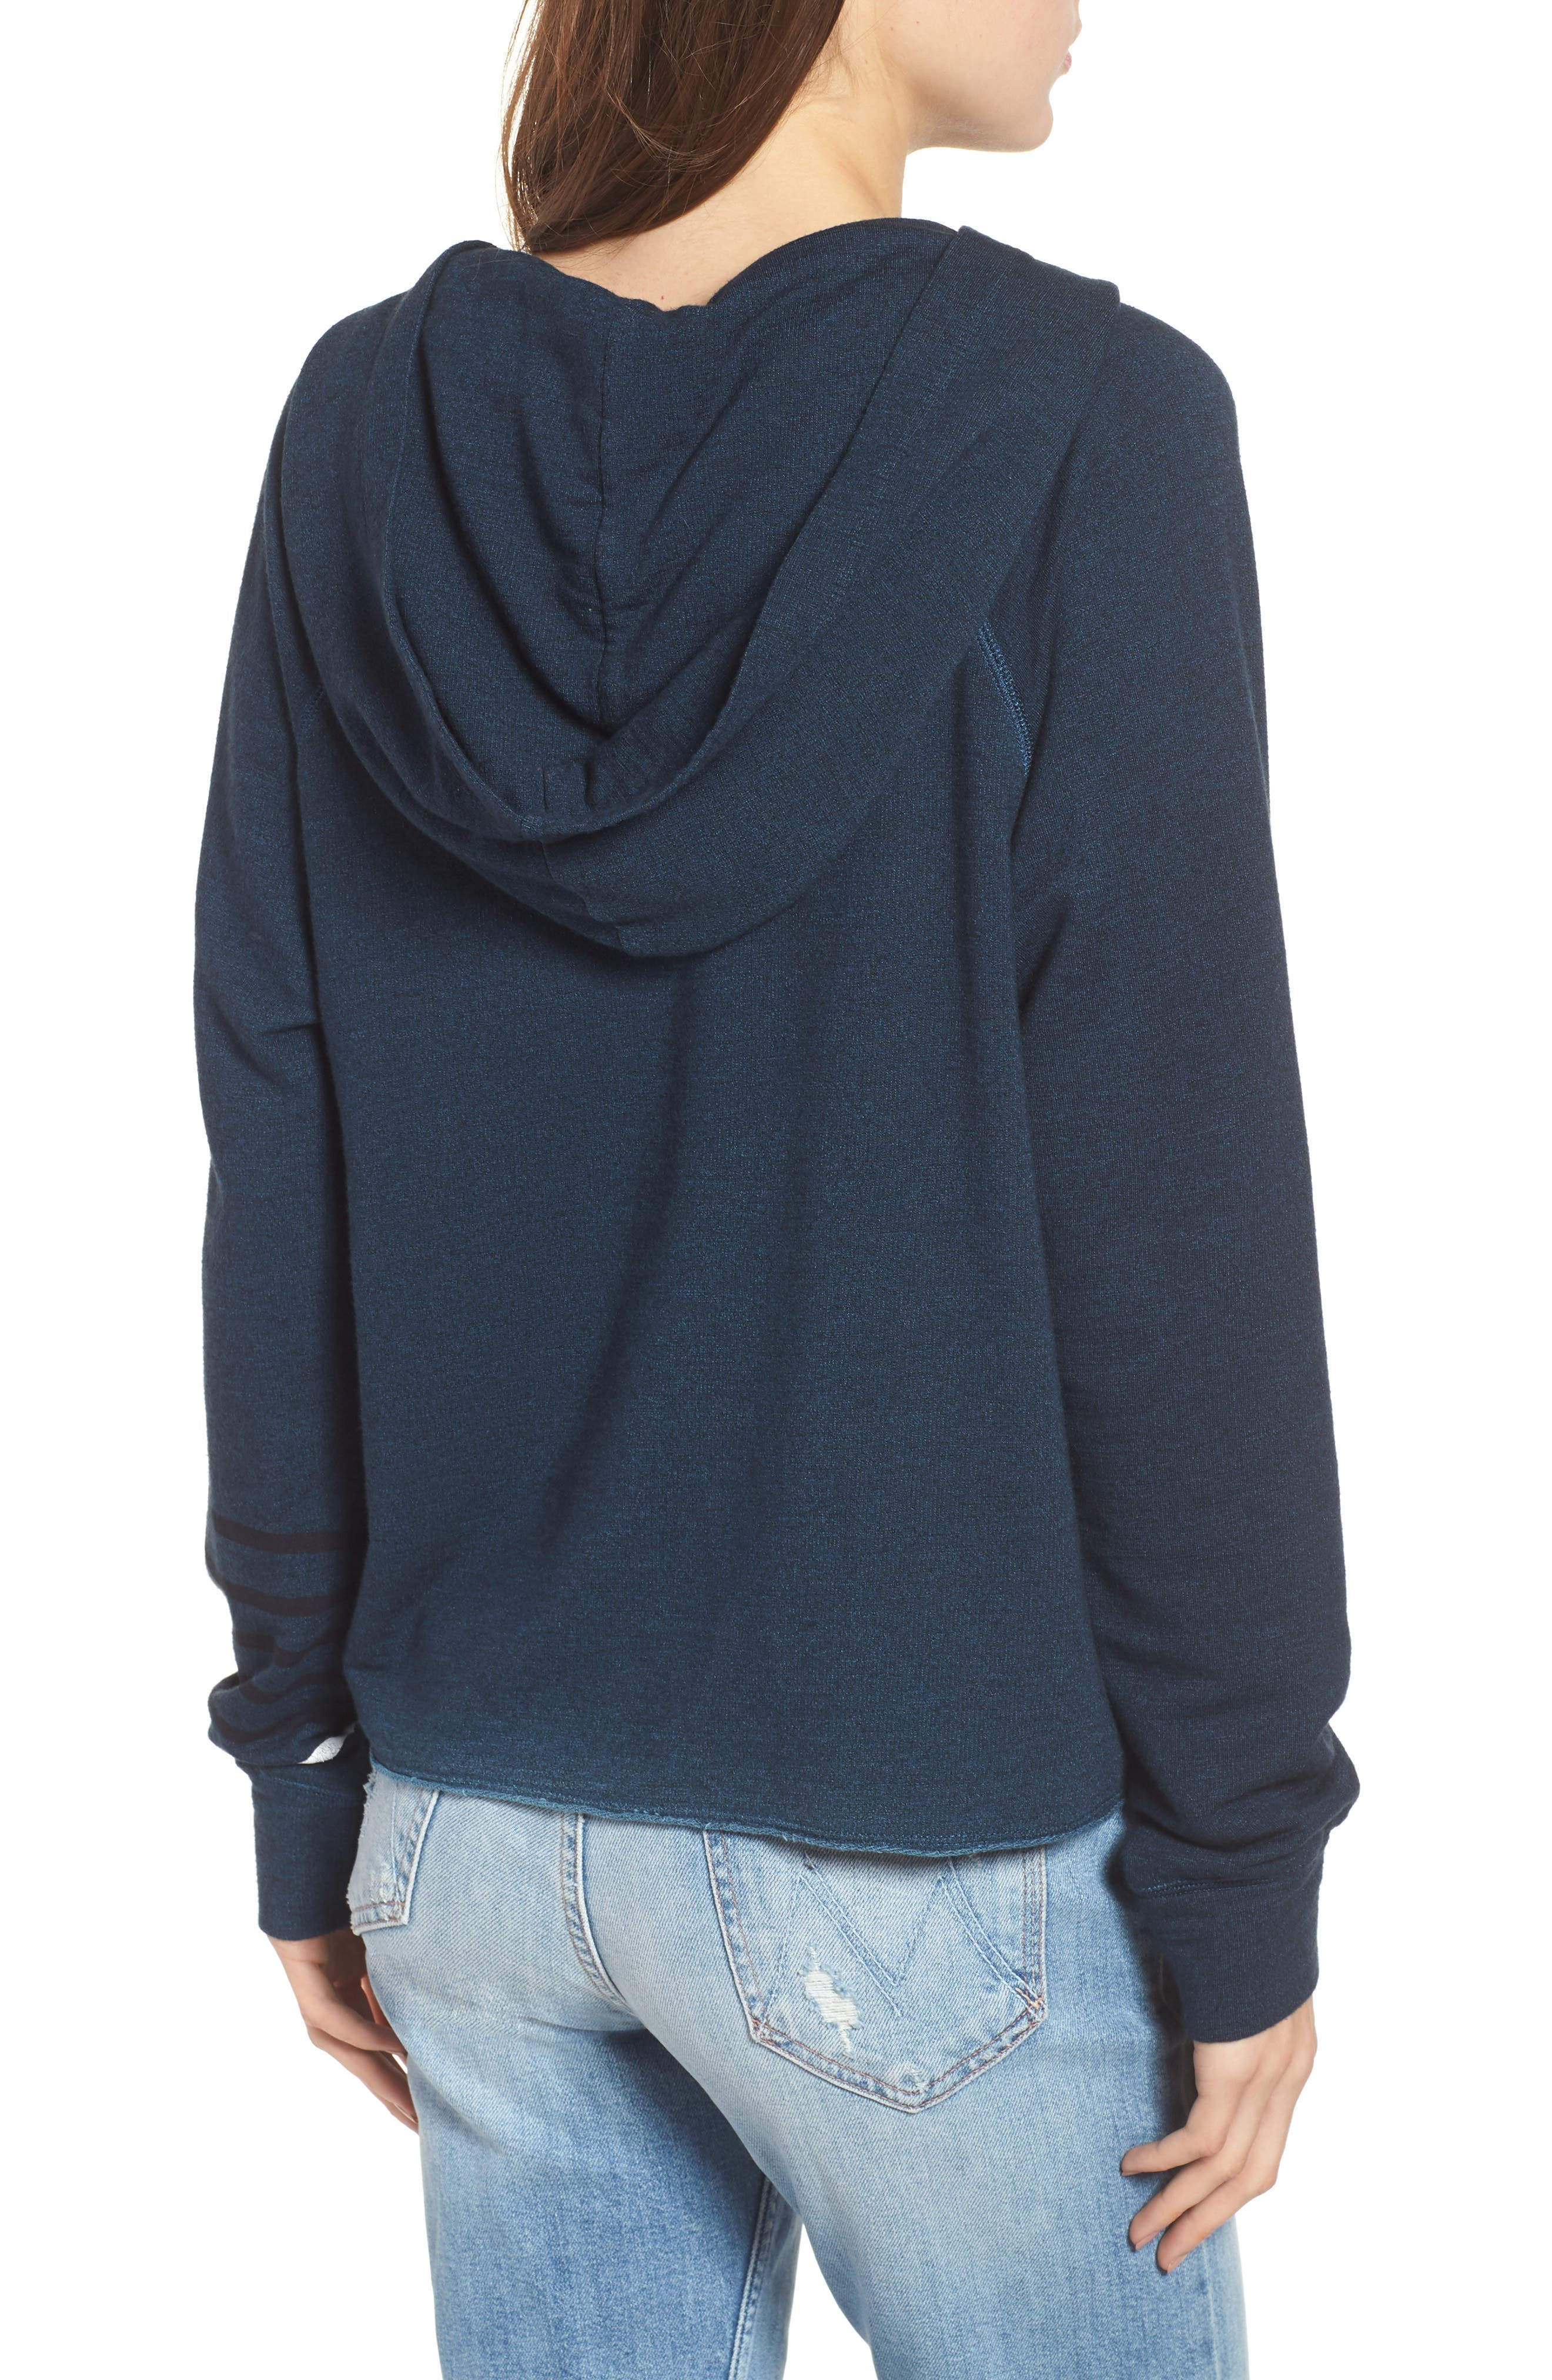 SUNDRY,                             Lover Active Crop Hoodie,                             Alternate thumbnail 2, color,                             405